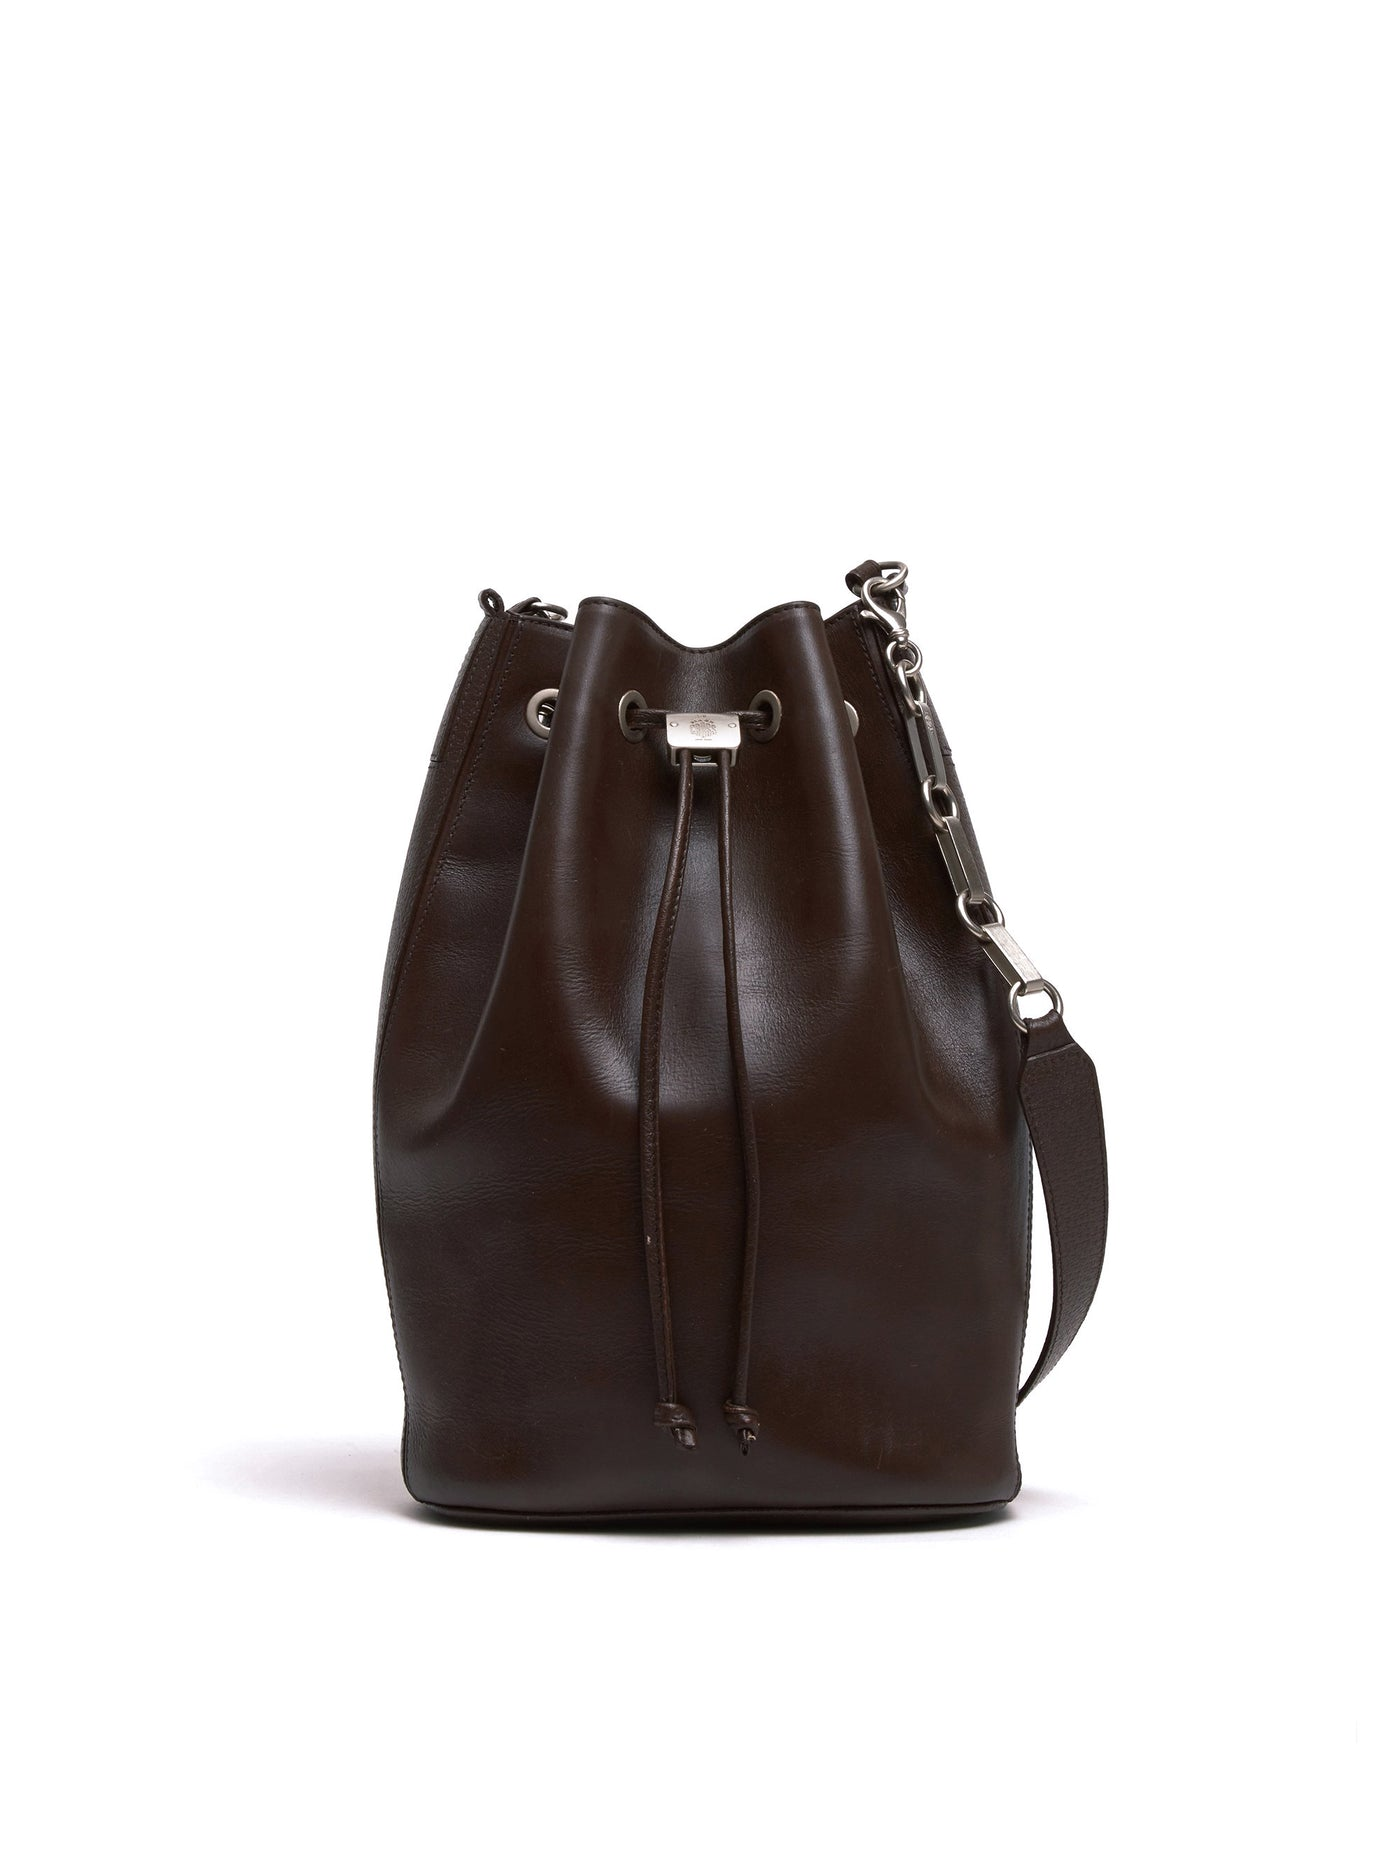 Mark Cross Vintage Leather Bucket Bag Chocolate Front